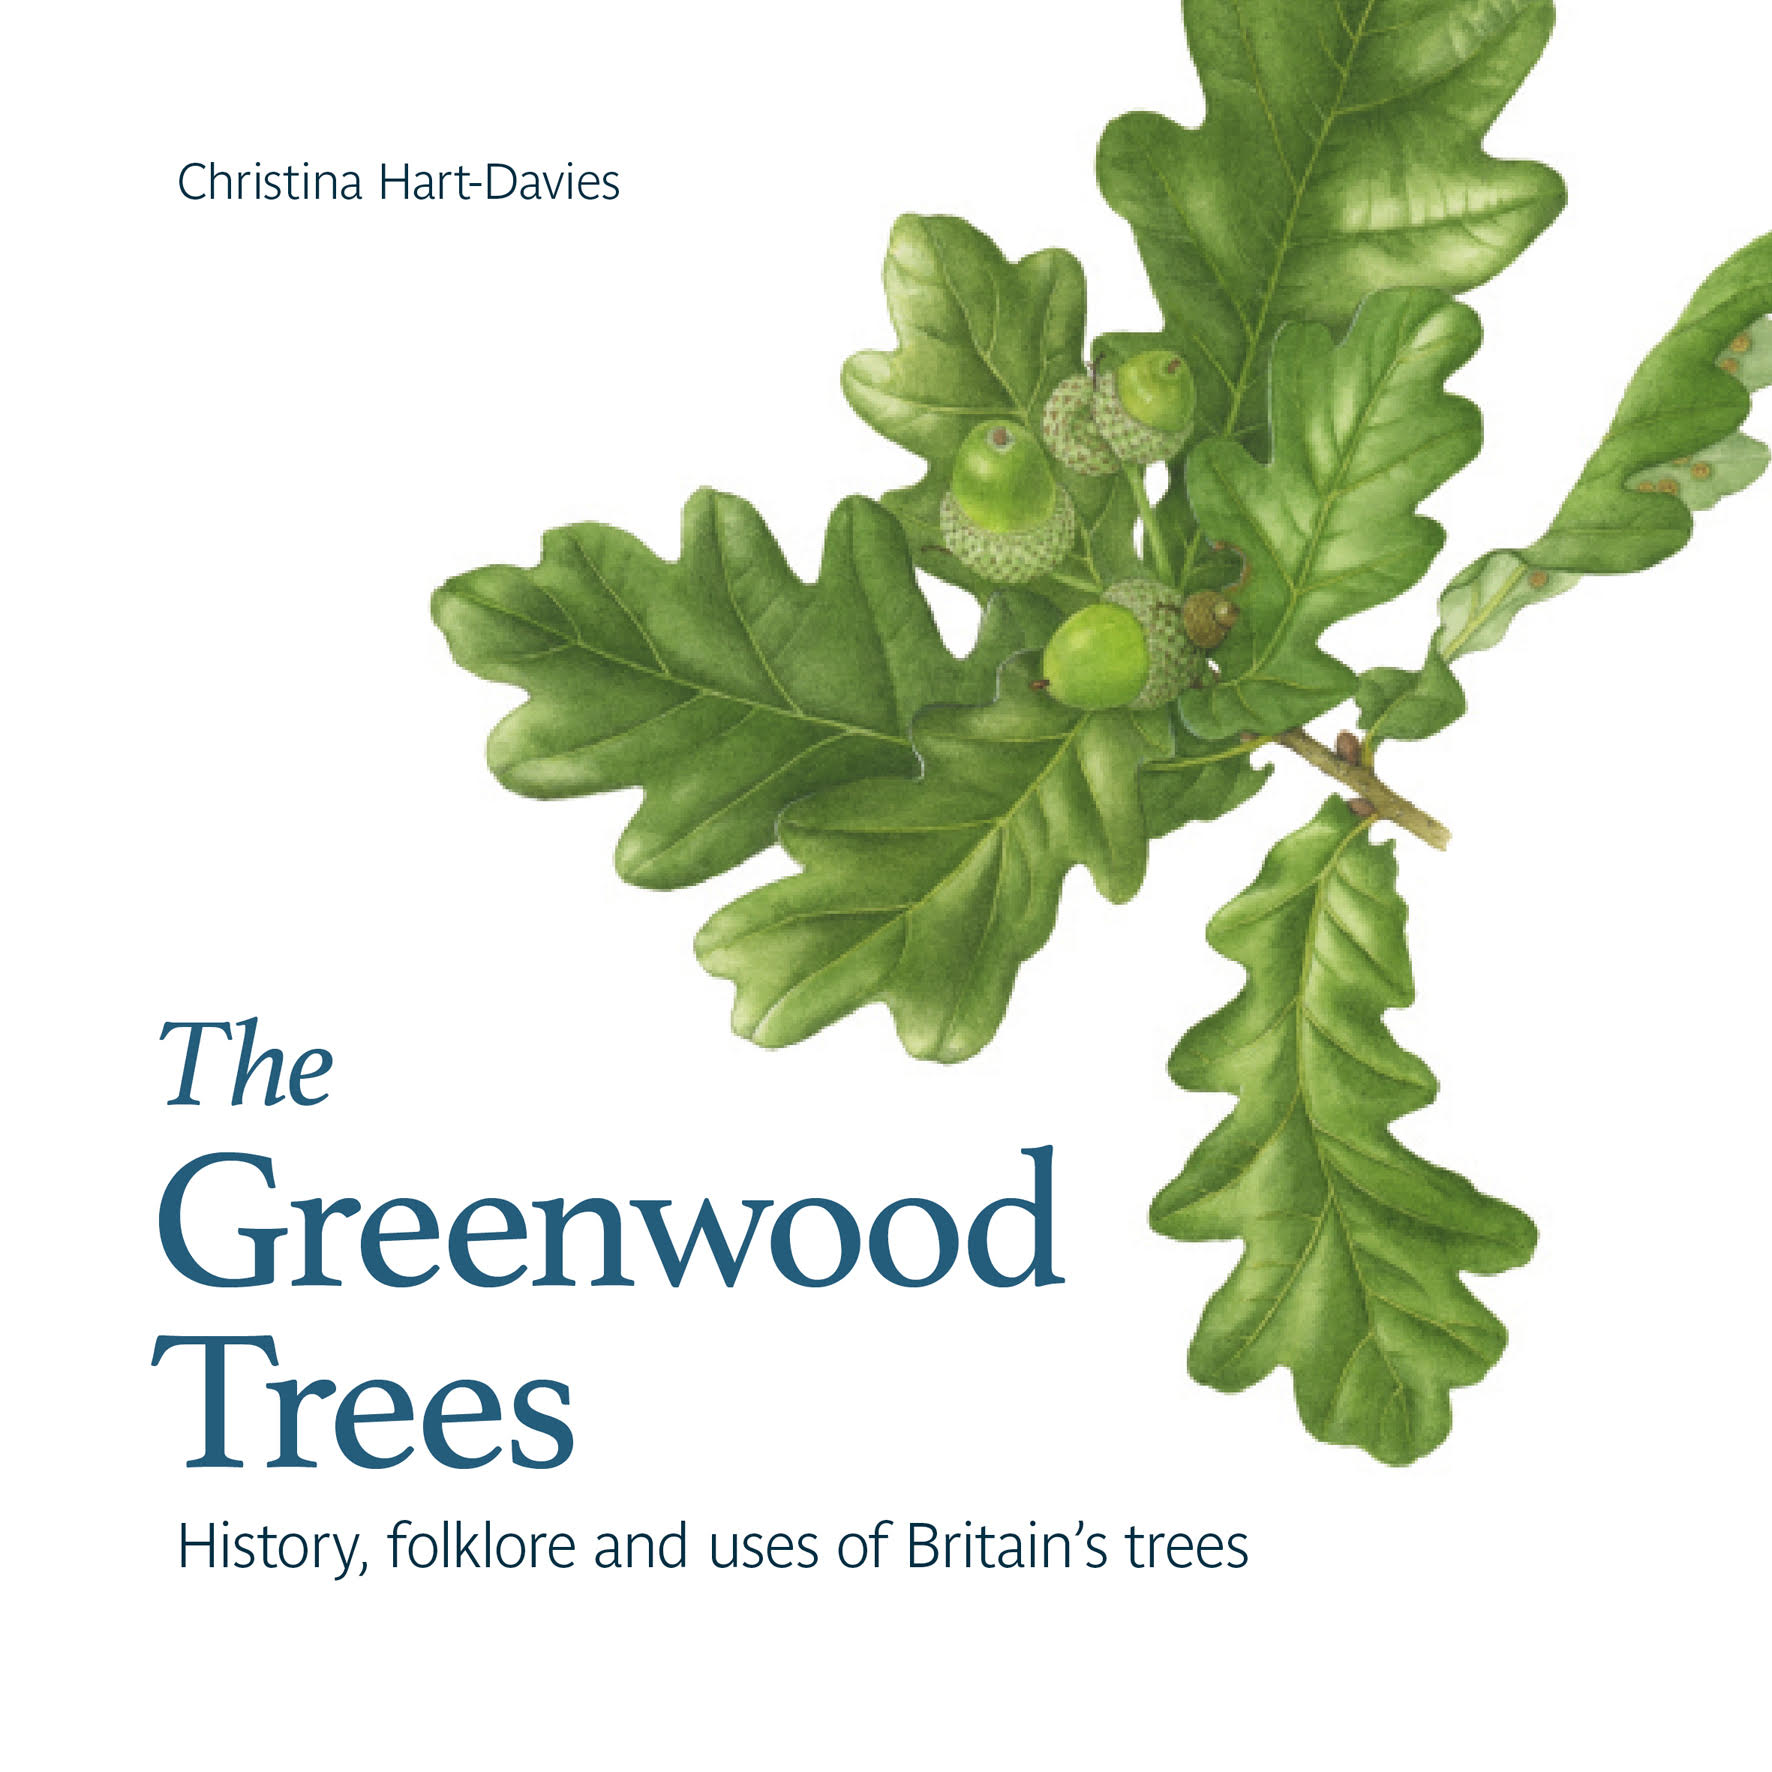 The Greenwood Trees: History, folklore and uses of Britain's trees